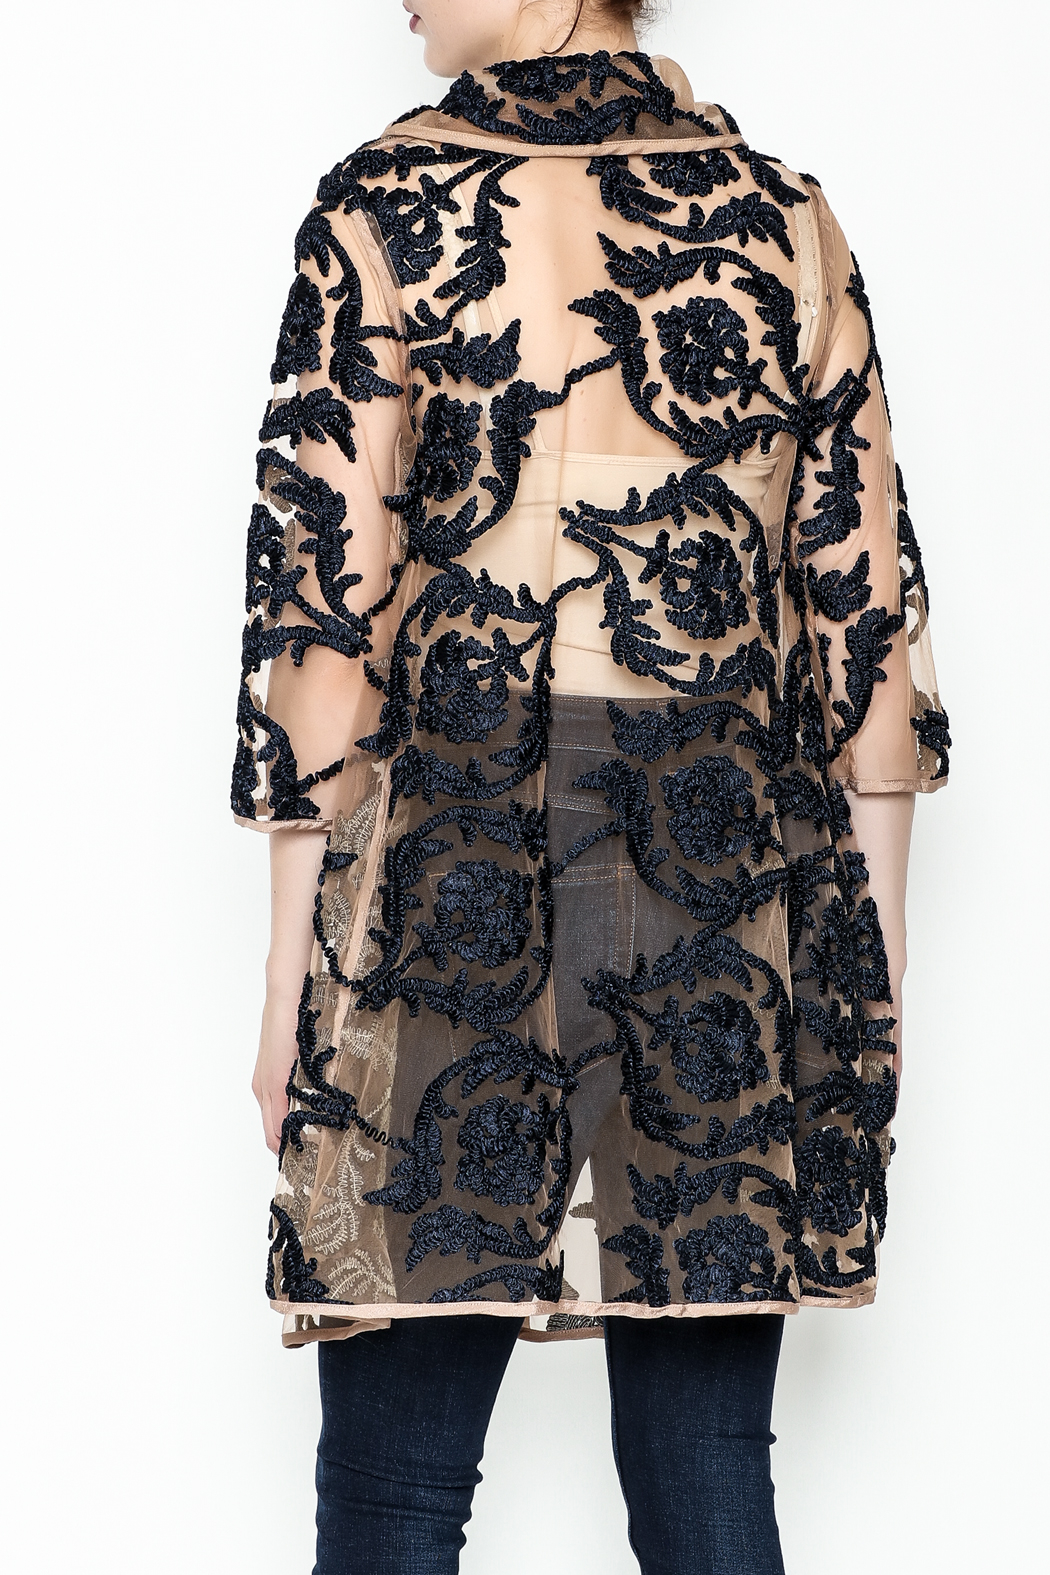 Gracia Embroidered Jacket - Back Cropped Image